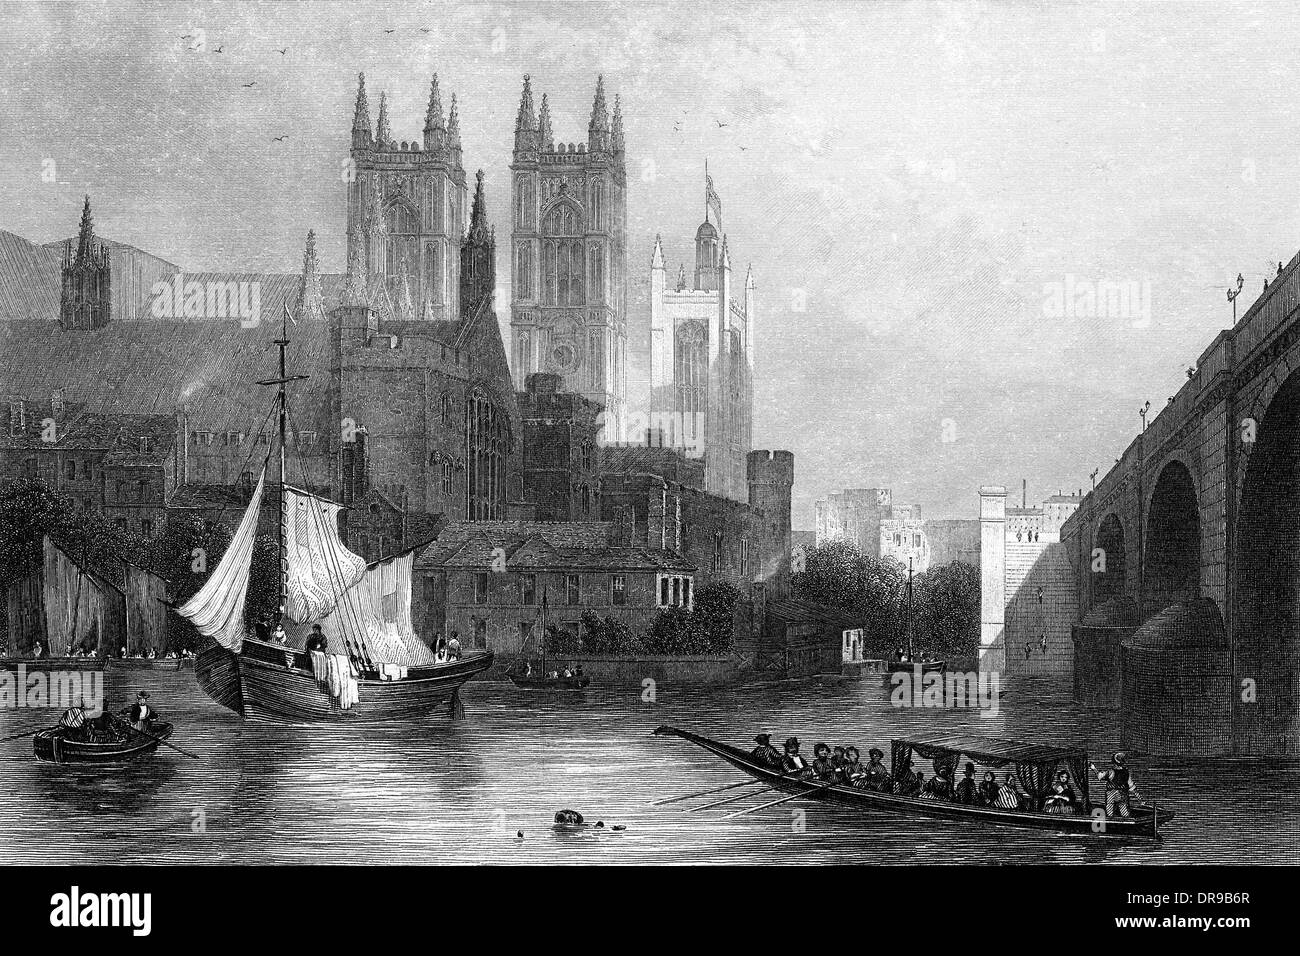 WESTMINSTER ON THAMES - Stock Image